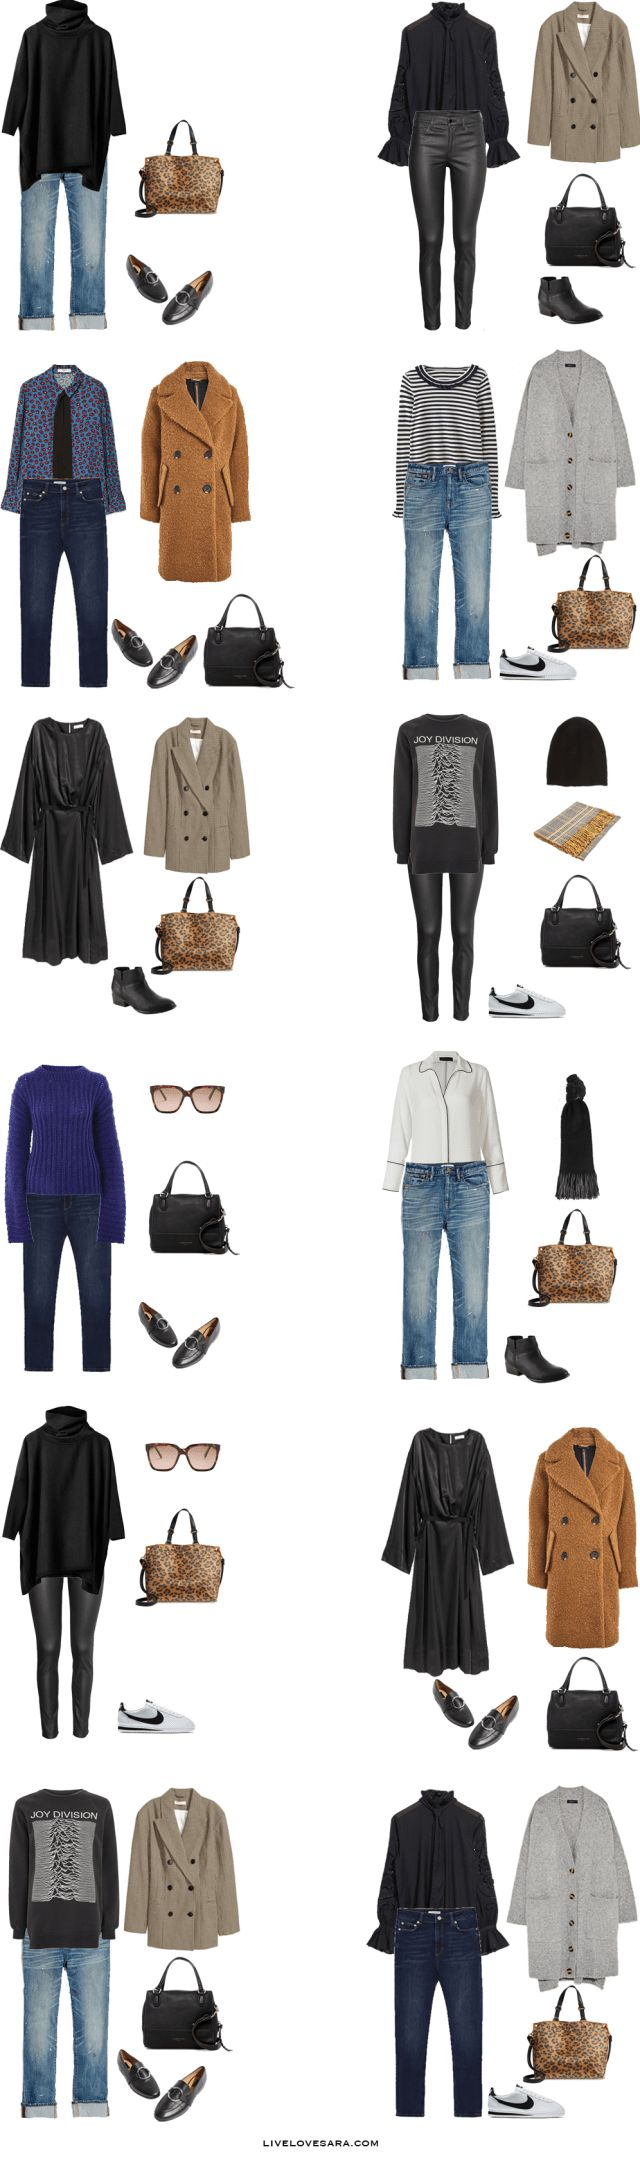 What to Pack for Warsaw Poland Packing Light List 14 Outfit Options